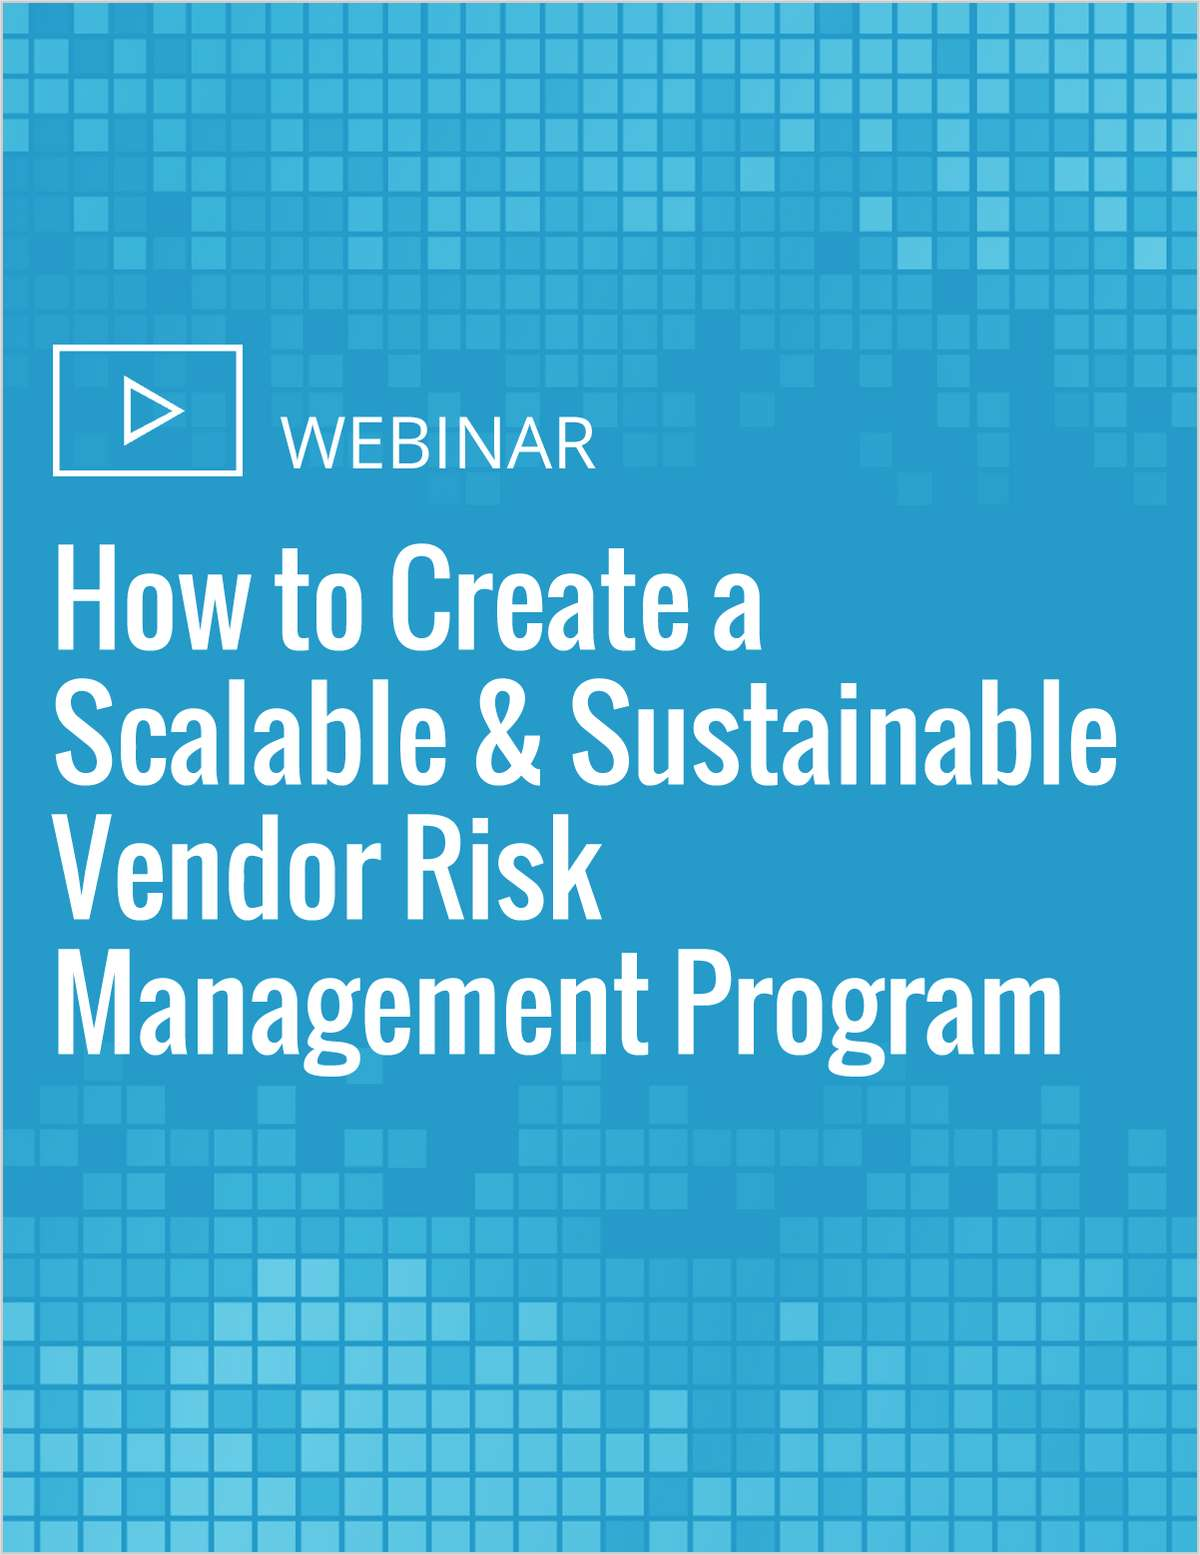 How to Create a Scalable & Sustainable Vendor Risk Management Program